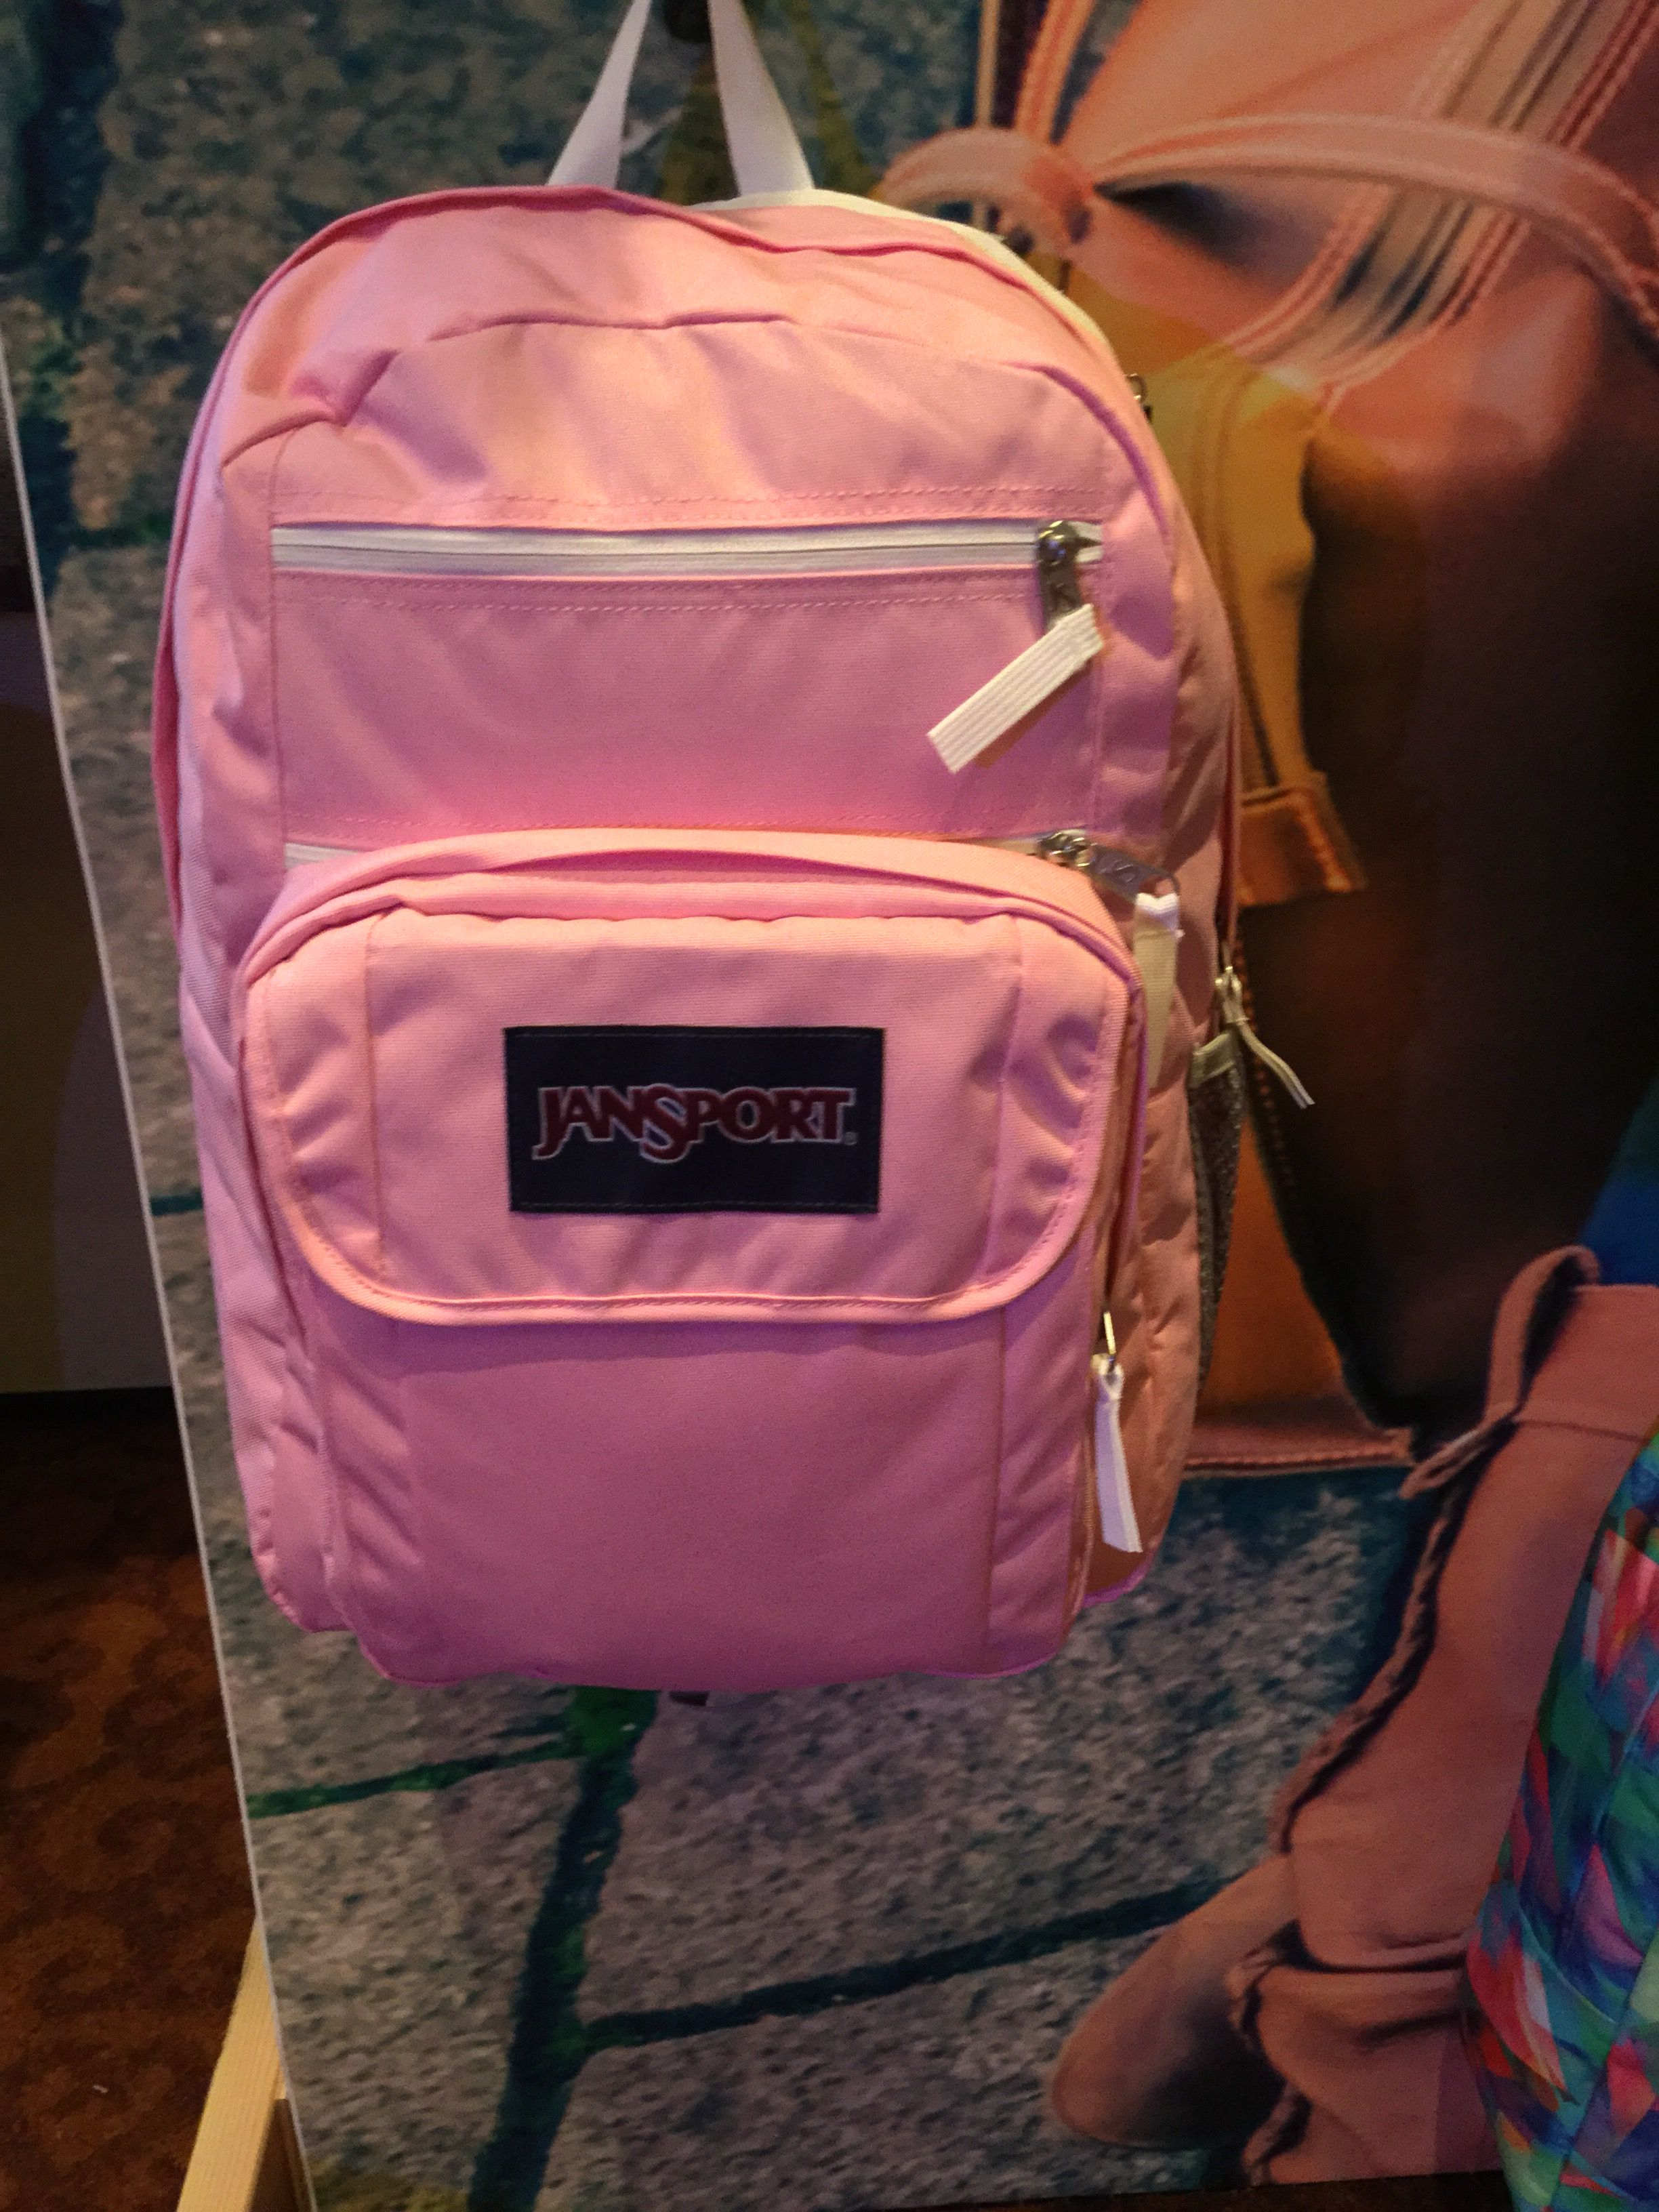 0843398ec92 JanSport DIGITAL  DIGITAL STUDENT with removable laptop sleeve Prism Pink  (carryover) available SPRING 18. Find this Pin and more on High school  backpacks ...